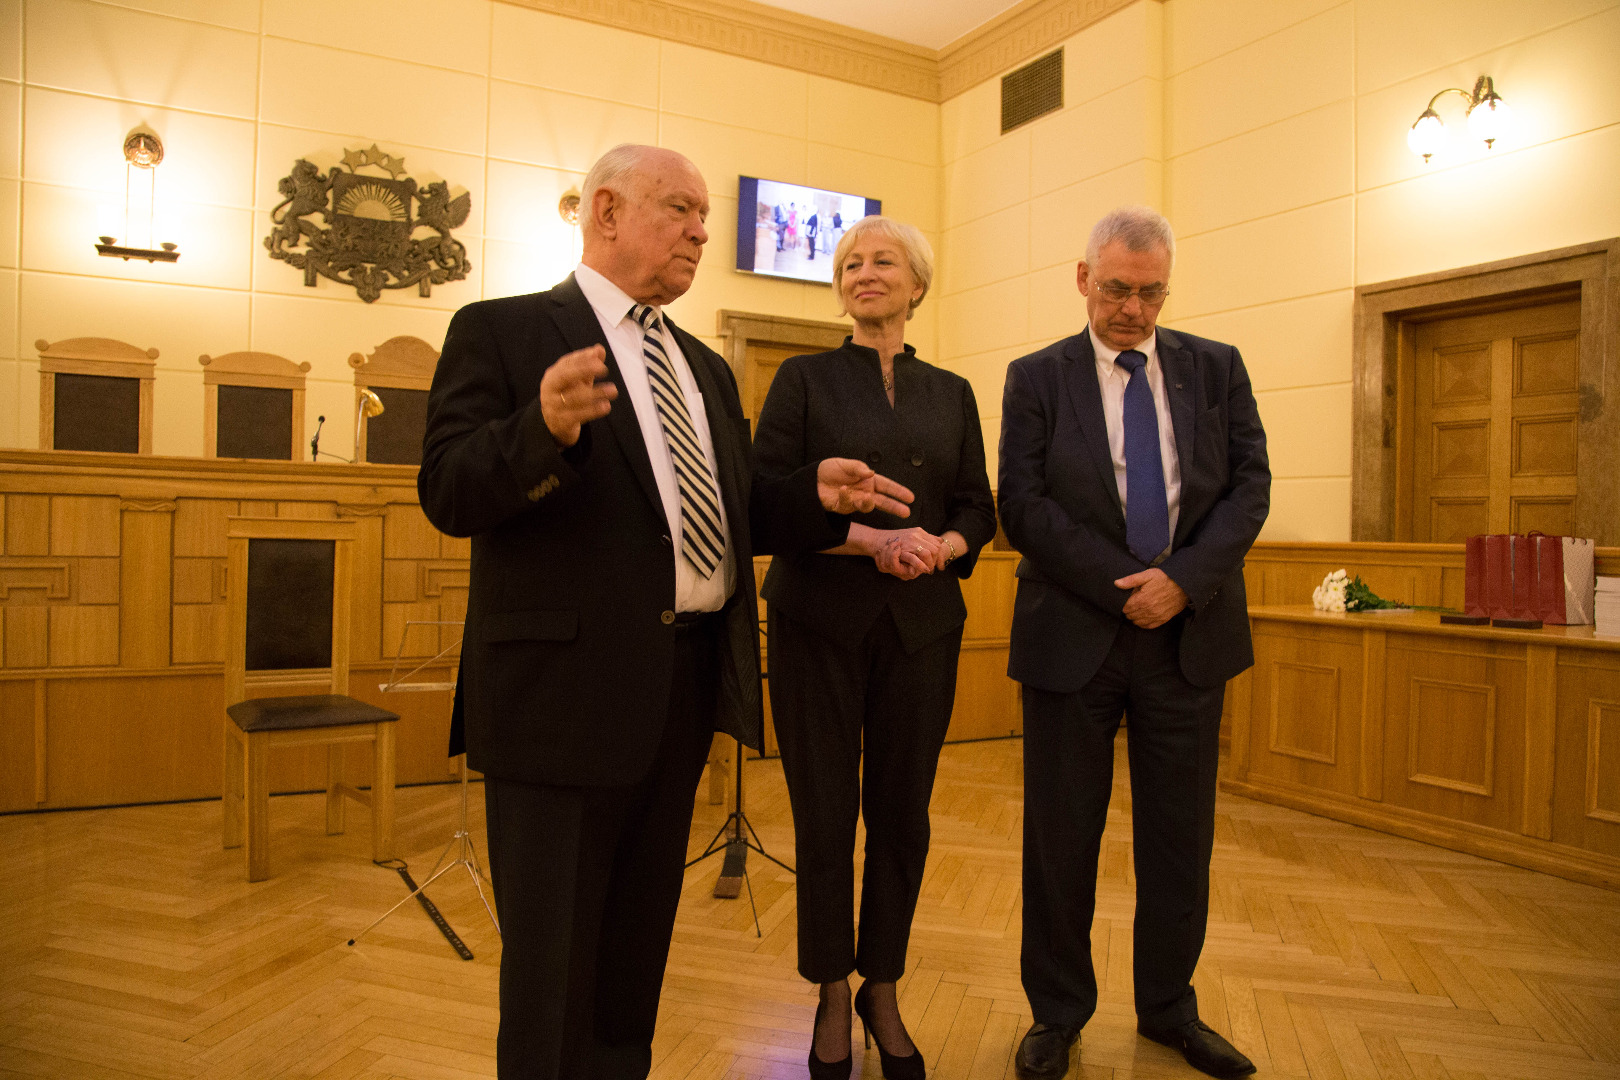 Three chairpersons of the Chamber of Civil Cases – Gunars Aigars, Ineta Ozola and Raimonds Gravelsins